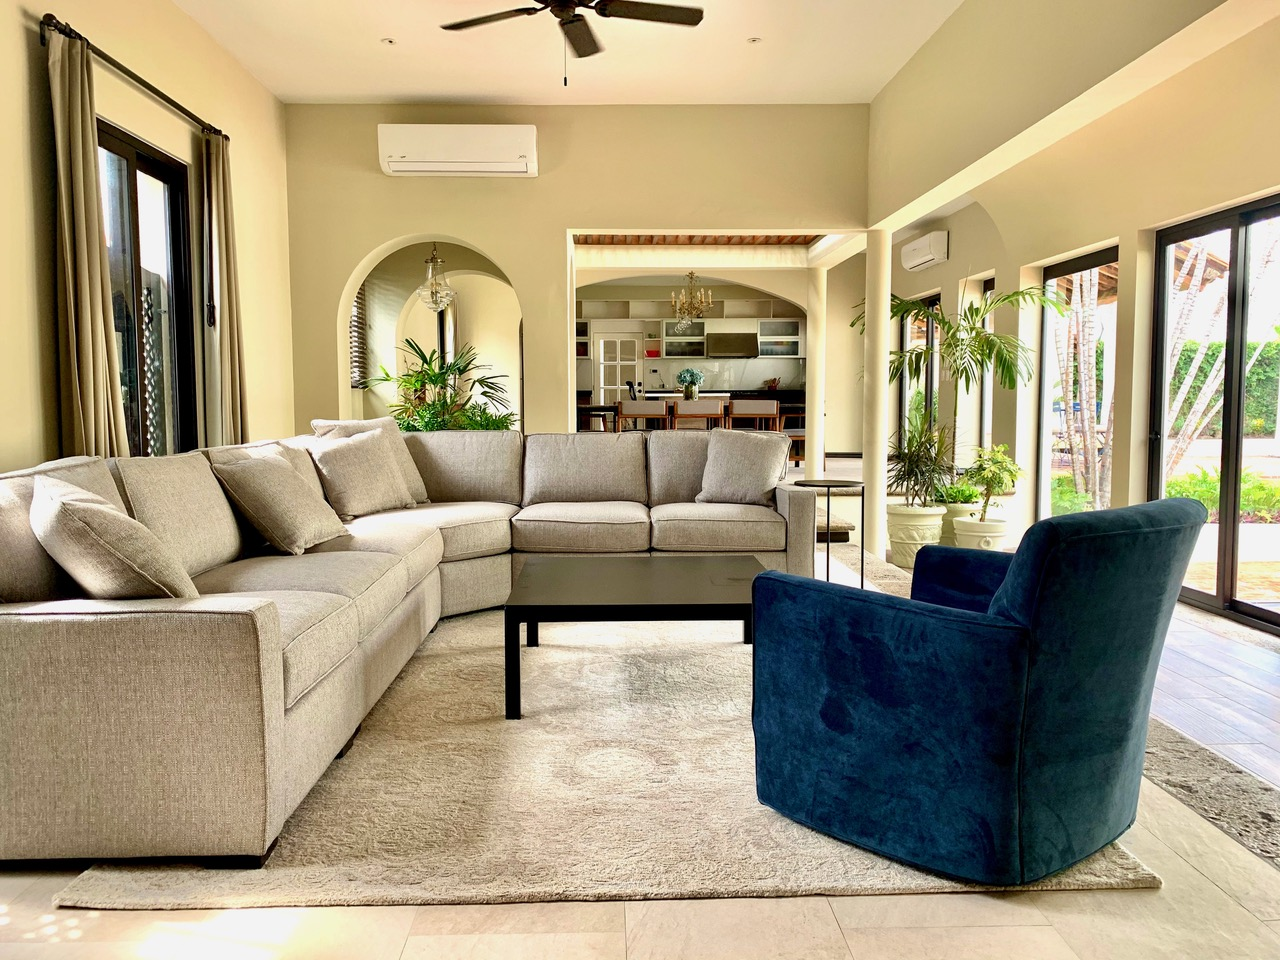 Large sectional sofa, window coverings for privacy.